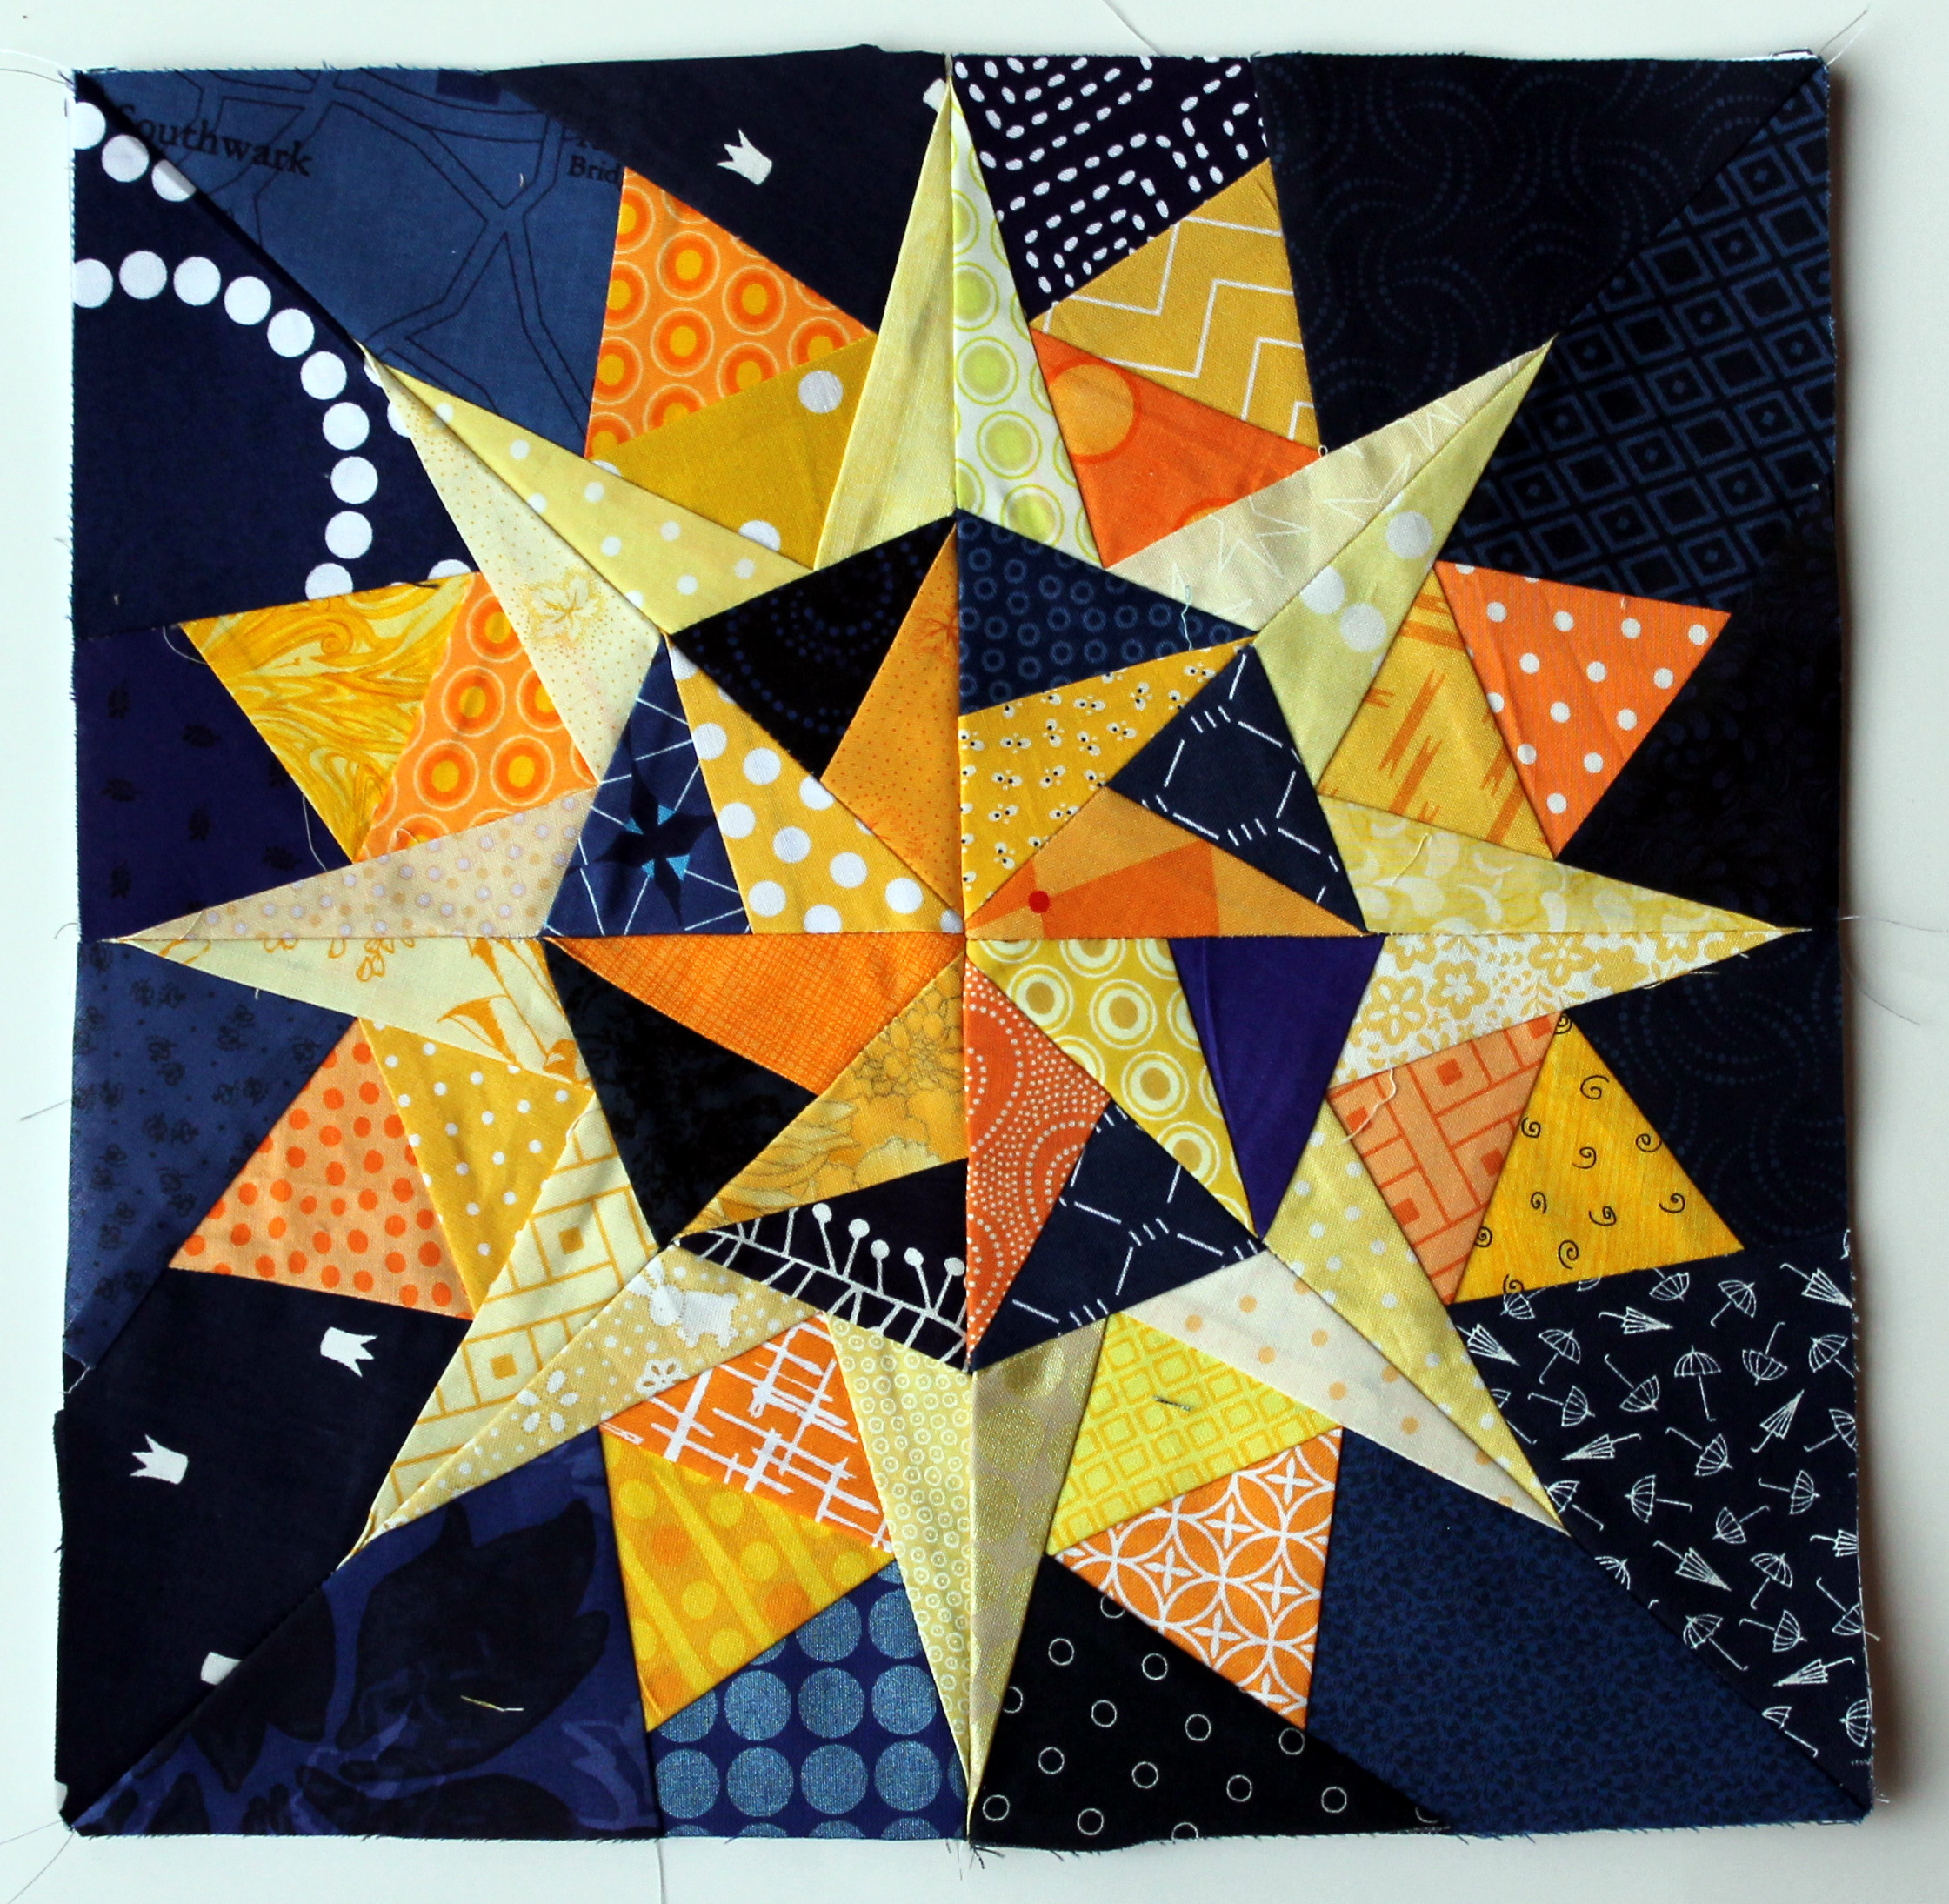 Starry Night continues – Paper Piecing Monday | WOMBAT QUILTS : starry night quilt pattern - Adamdwight.com